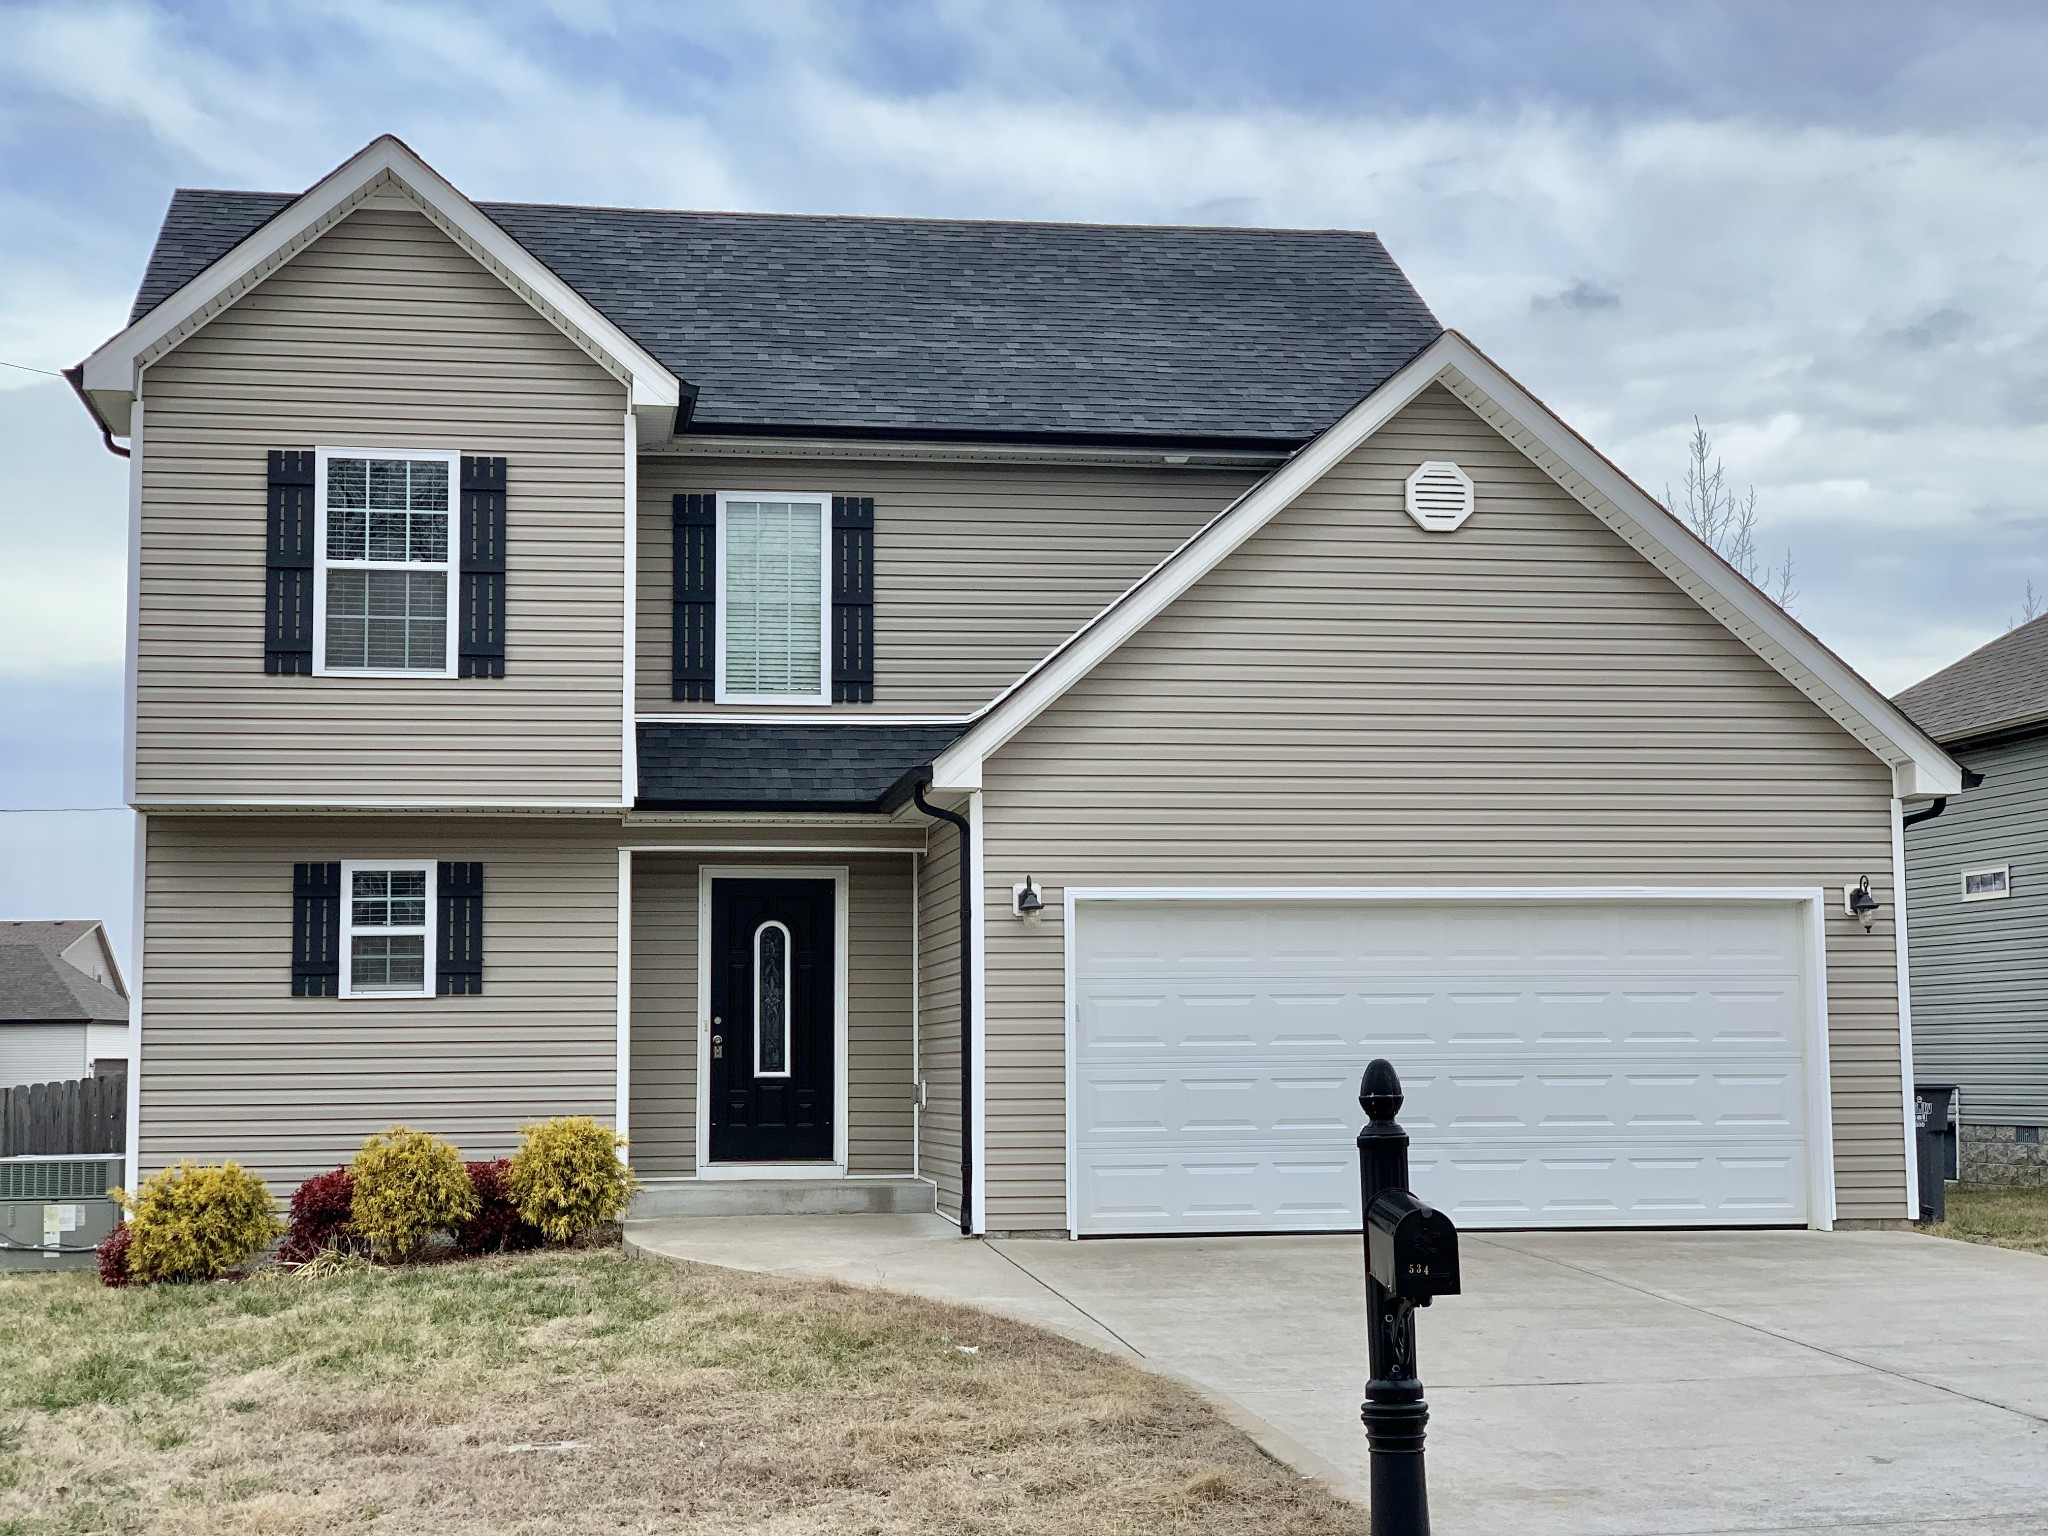 534 Magnolia Dr Property Photo - Clarksville, TN real estate listing